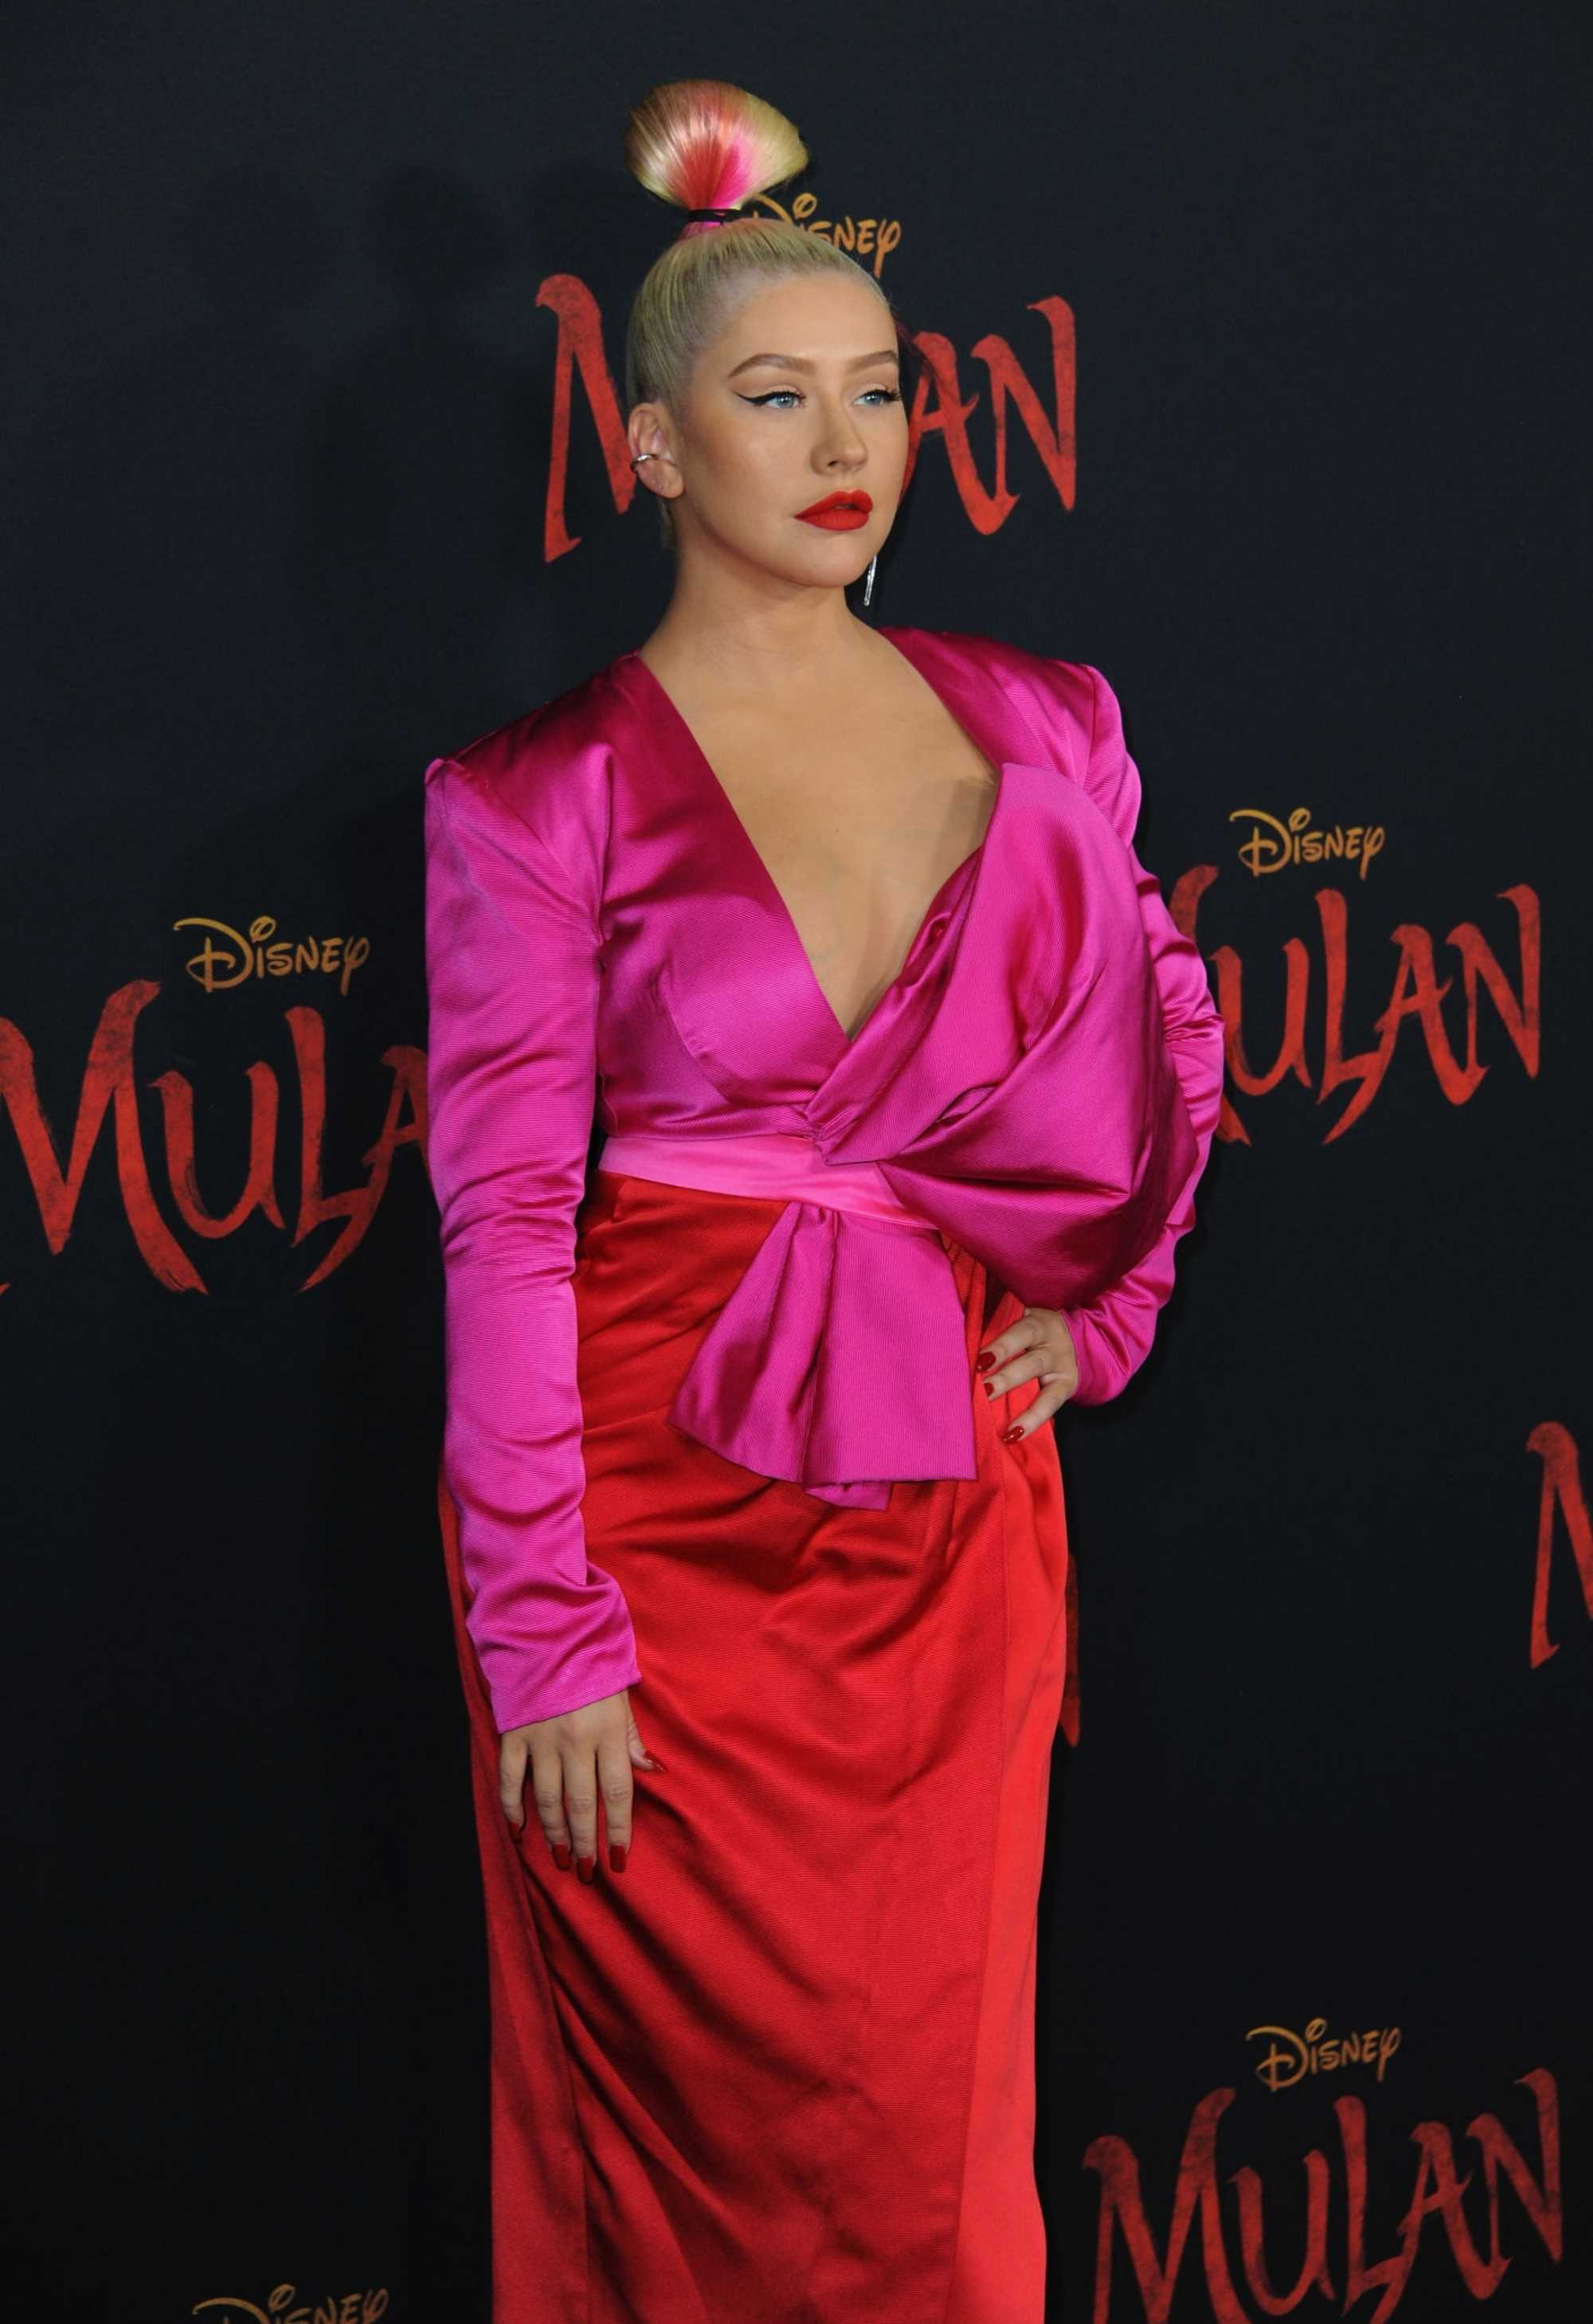 Christina_Aguilera_-_Disney_s_Mulan_Premiere_in_Hollywood2C_California__-_March_9-66.jpg